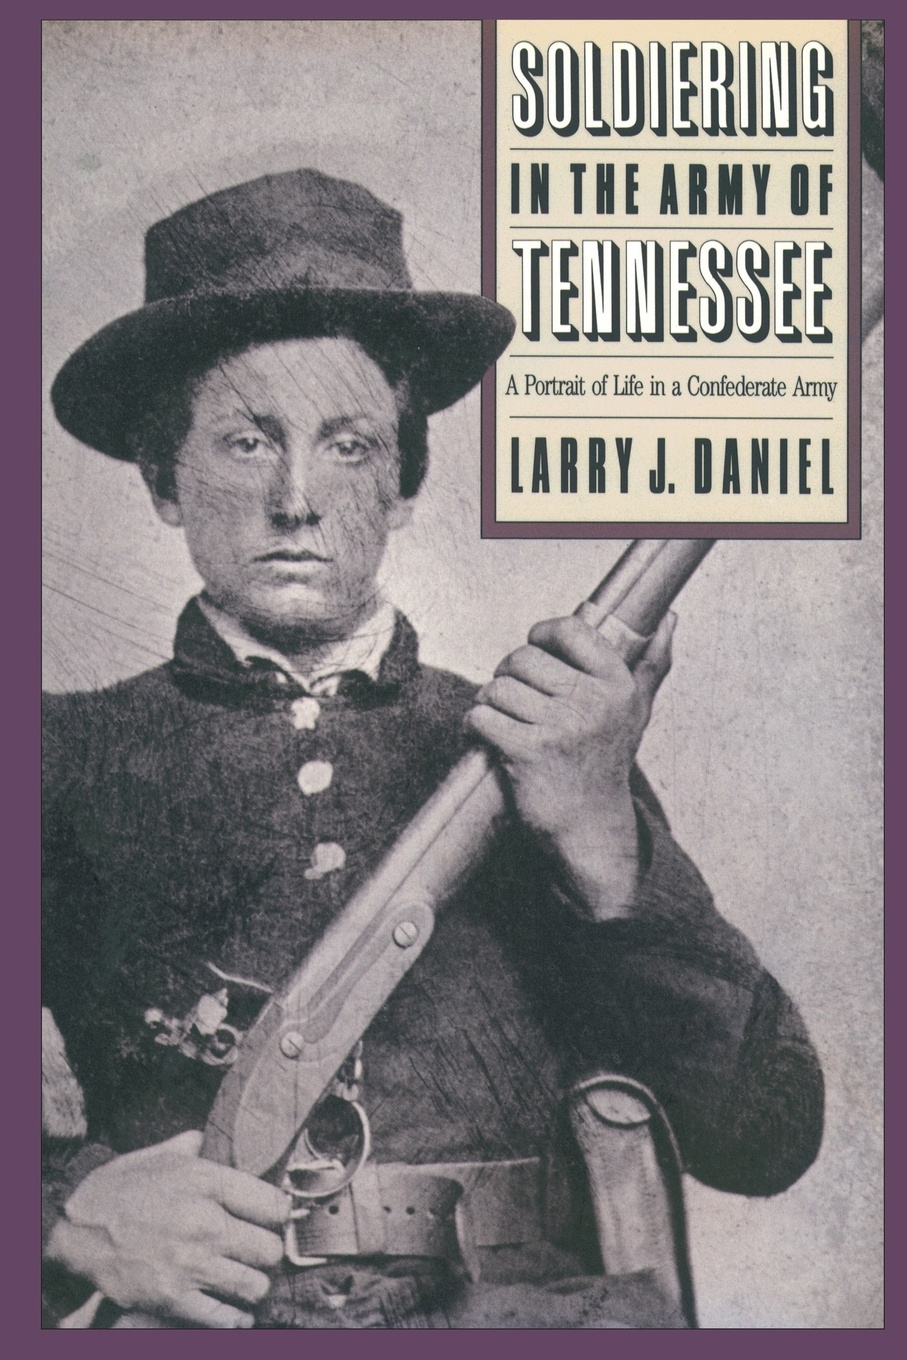 Larry J. Daniel Soldiering in the Army of Tennessee. A Portrait of Life in a Confederate Army зеркало карлоса сантоса 2019 10 18t21 15